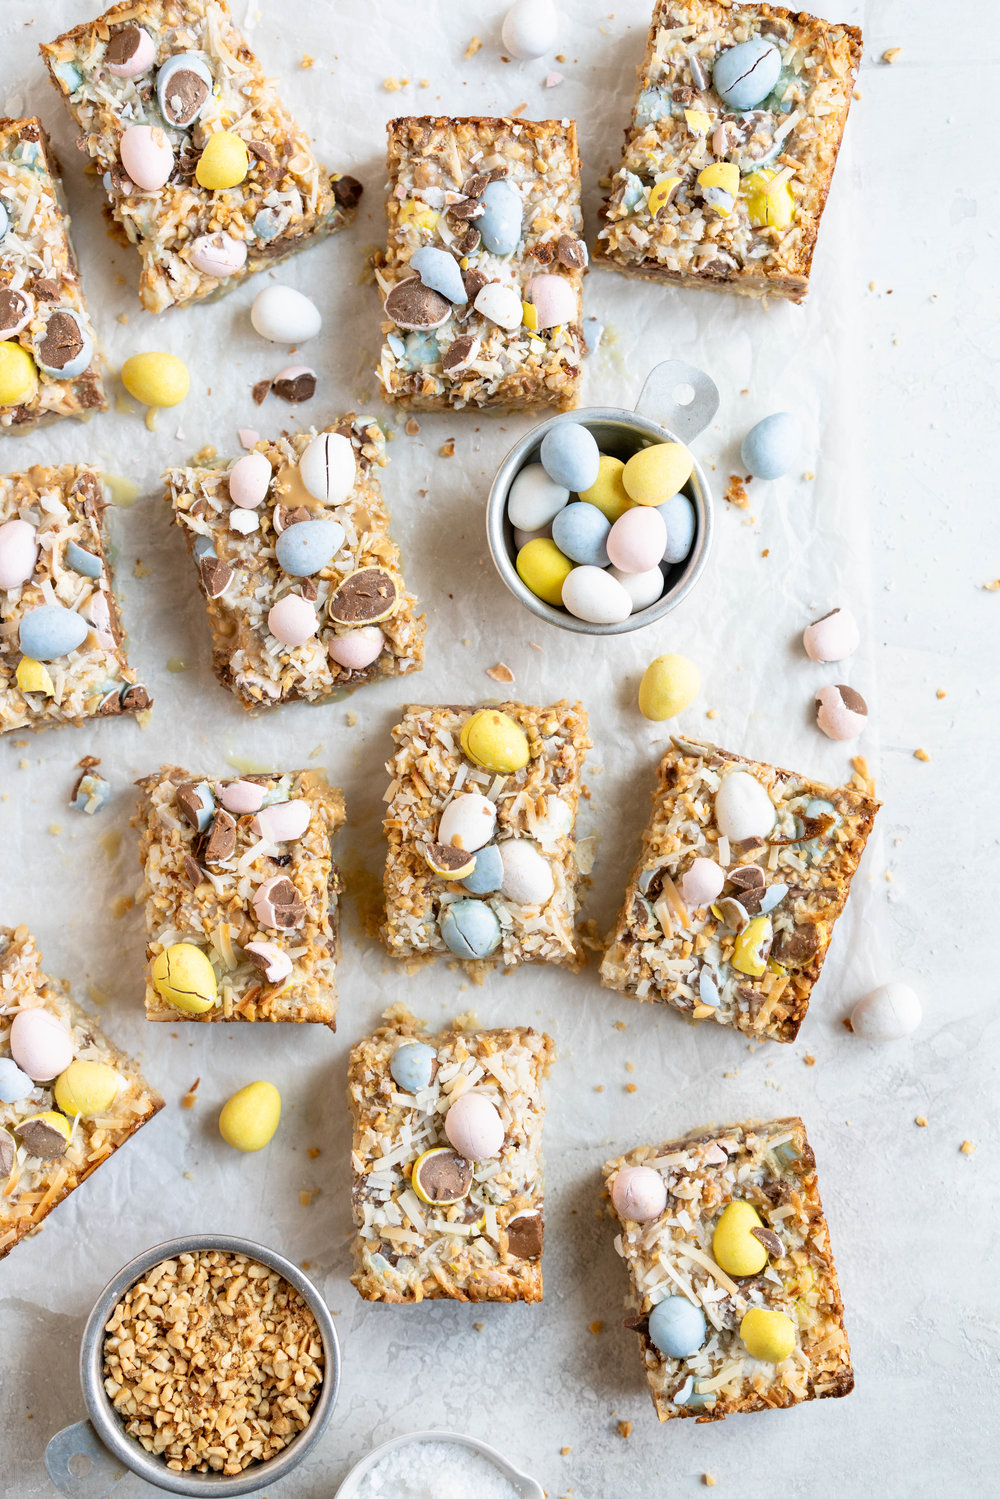 Mini egg magic bars are the ultimate Easter baking treat - a toasted hazelnut shortbread base is topped with a condensed milk topping, filled with mini eggs, shredded coconut, chopped hazelnuts, and caramelised white chocolate. These are super easy to make, and amazing for using up any leftover Easter candy you may have! #magicbars #minieggs #7layerbars